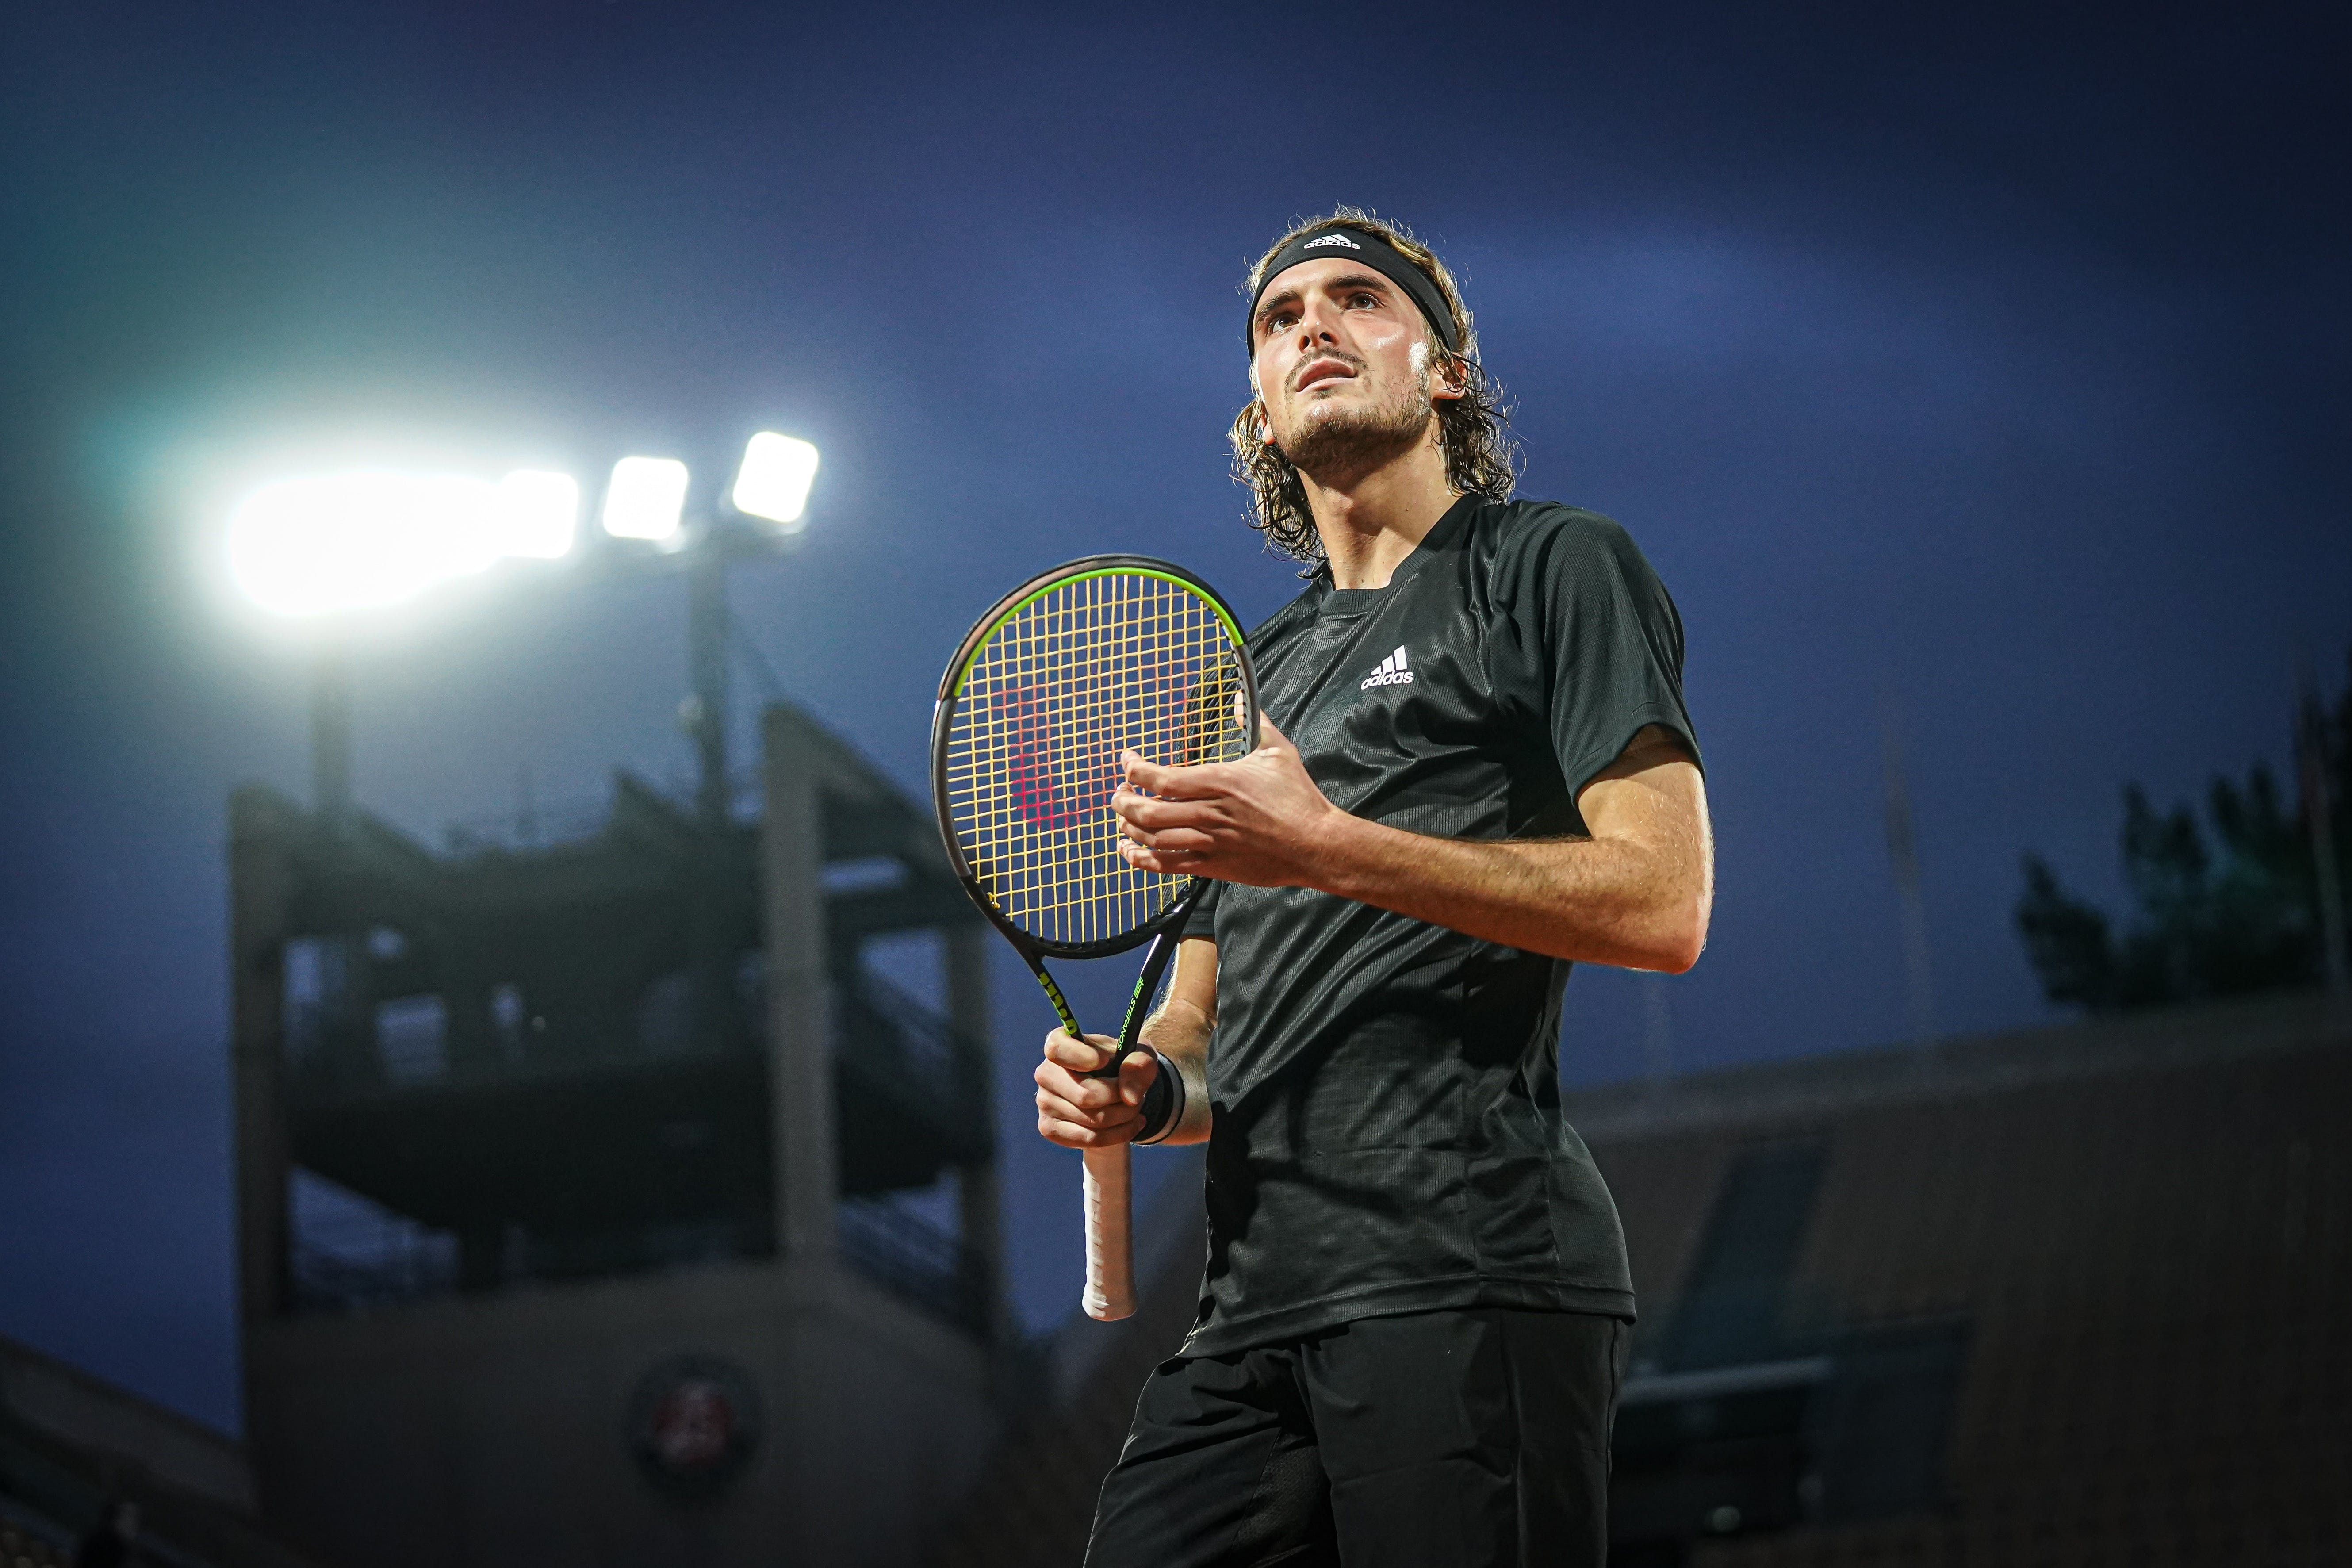 Stefanos Tsitsipas in the light at Roland-Garros 2020.